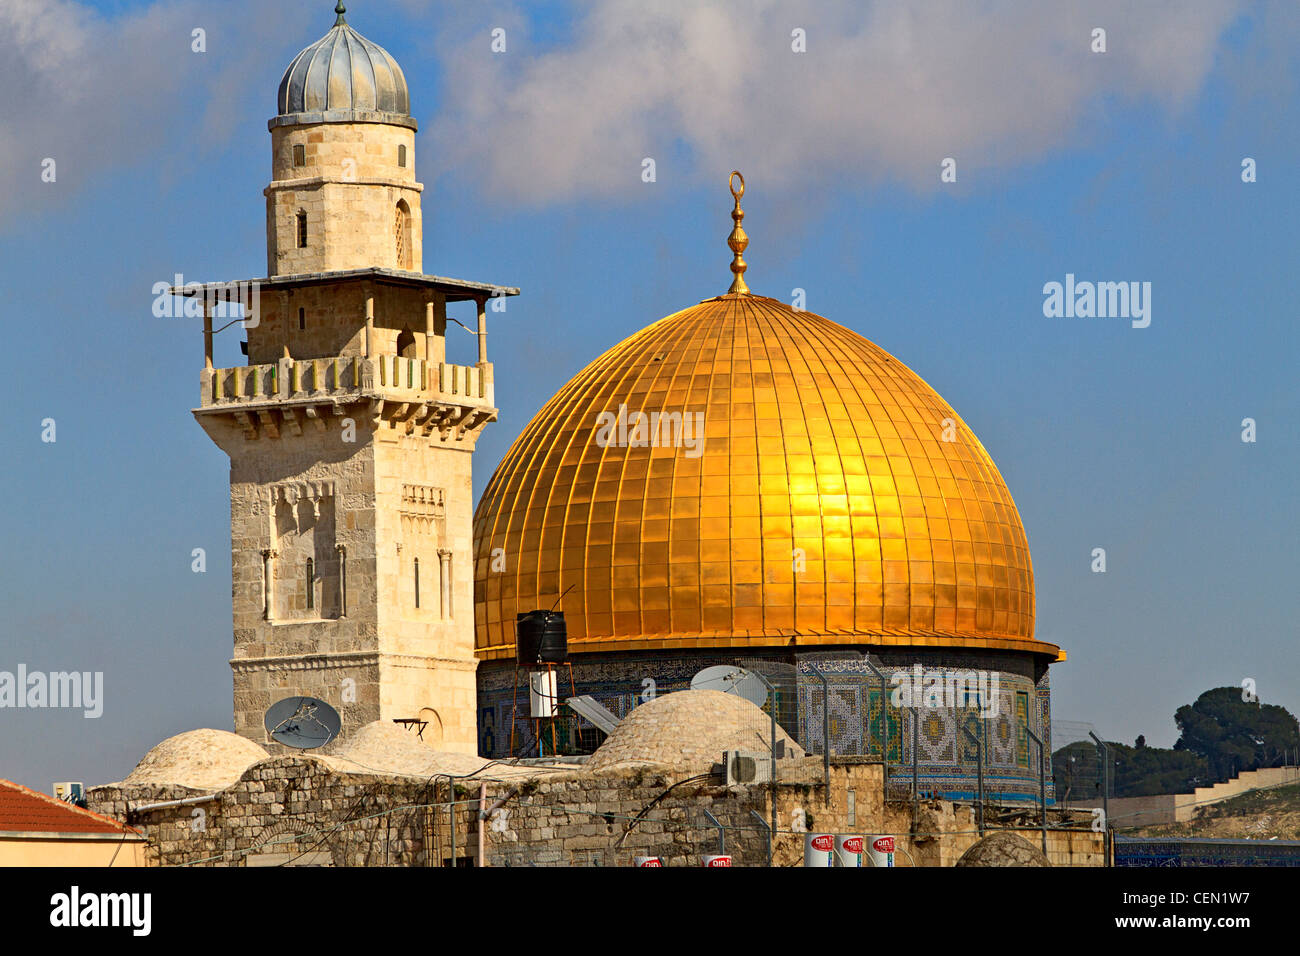 Dome of the Rock, famous Islamic site in Jerusalem Stock Photo